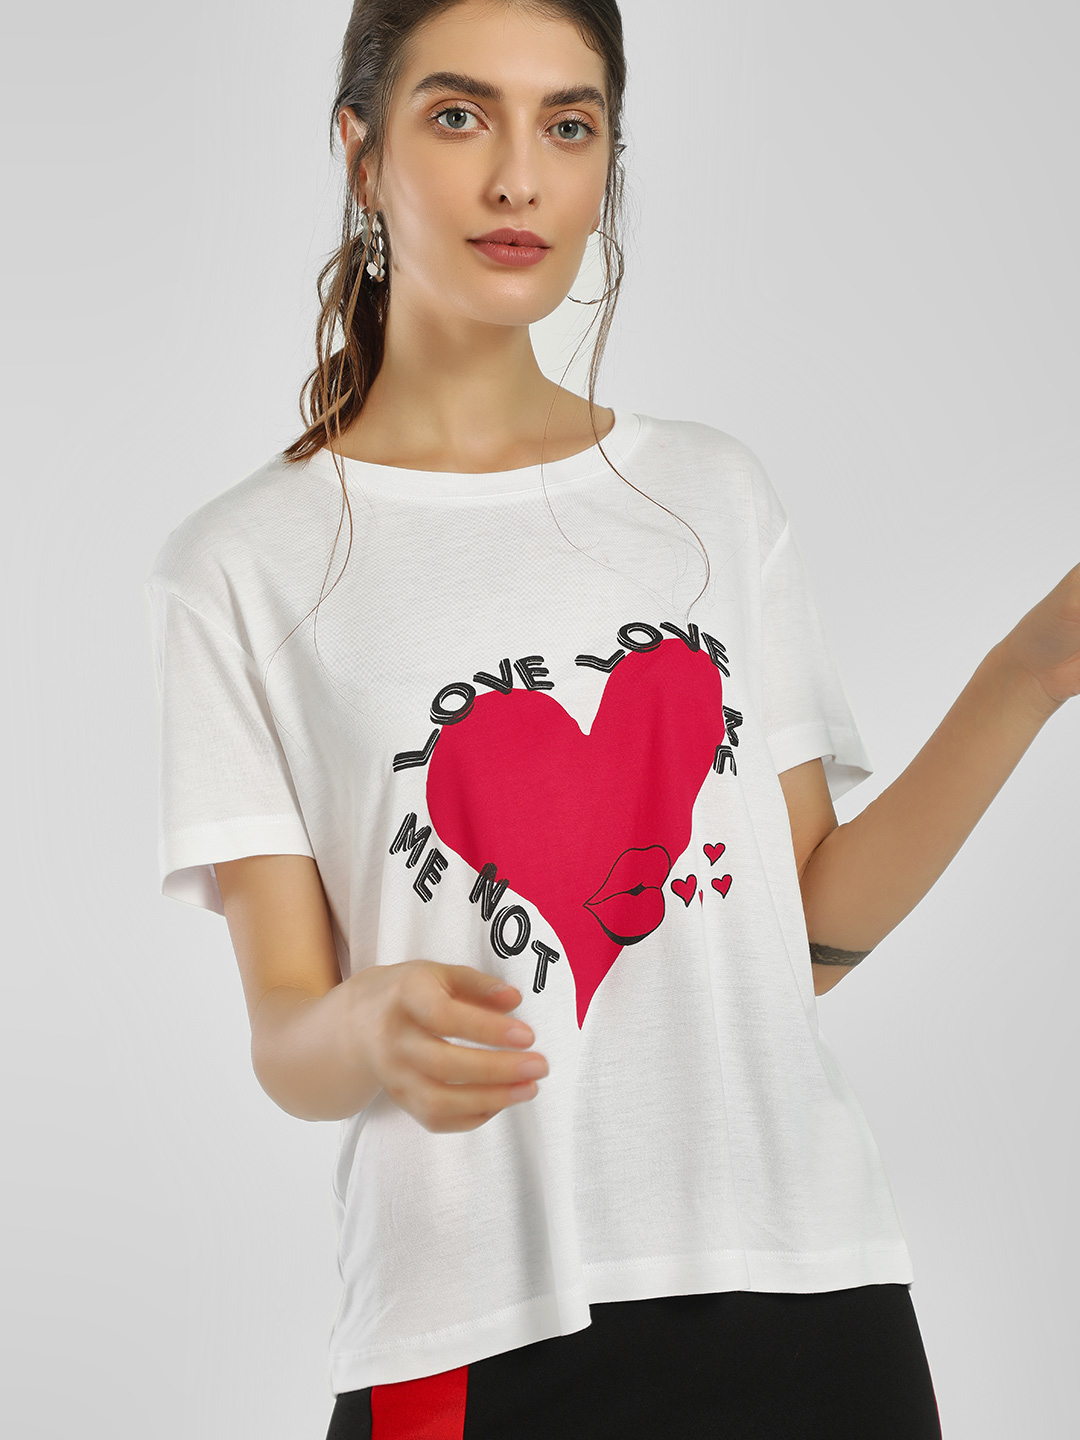 LOVEGEN White Placement Slogan Print T-Shirt 1